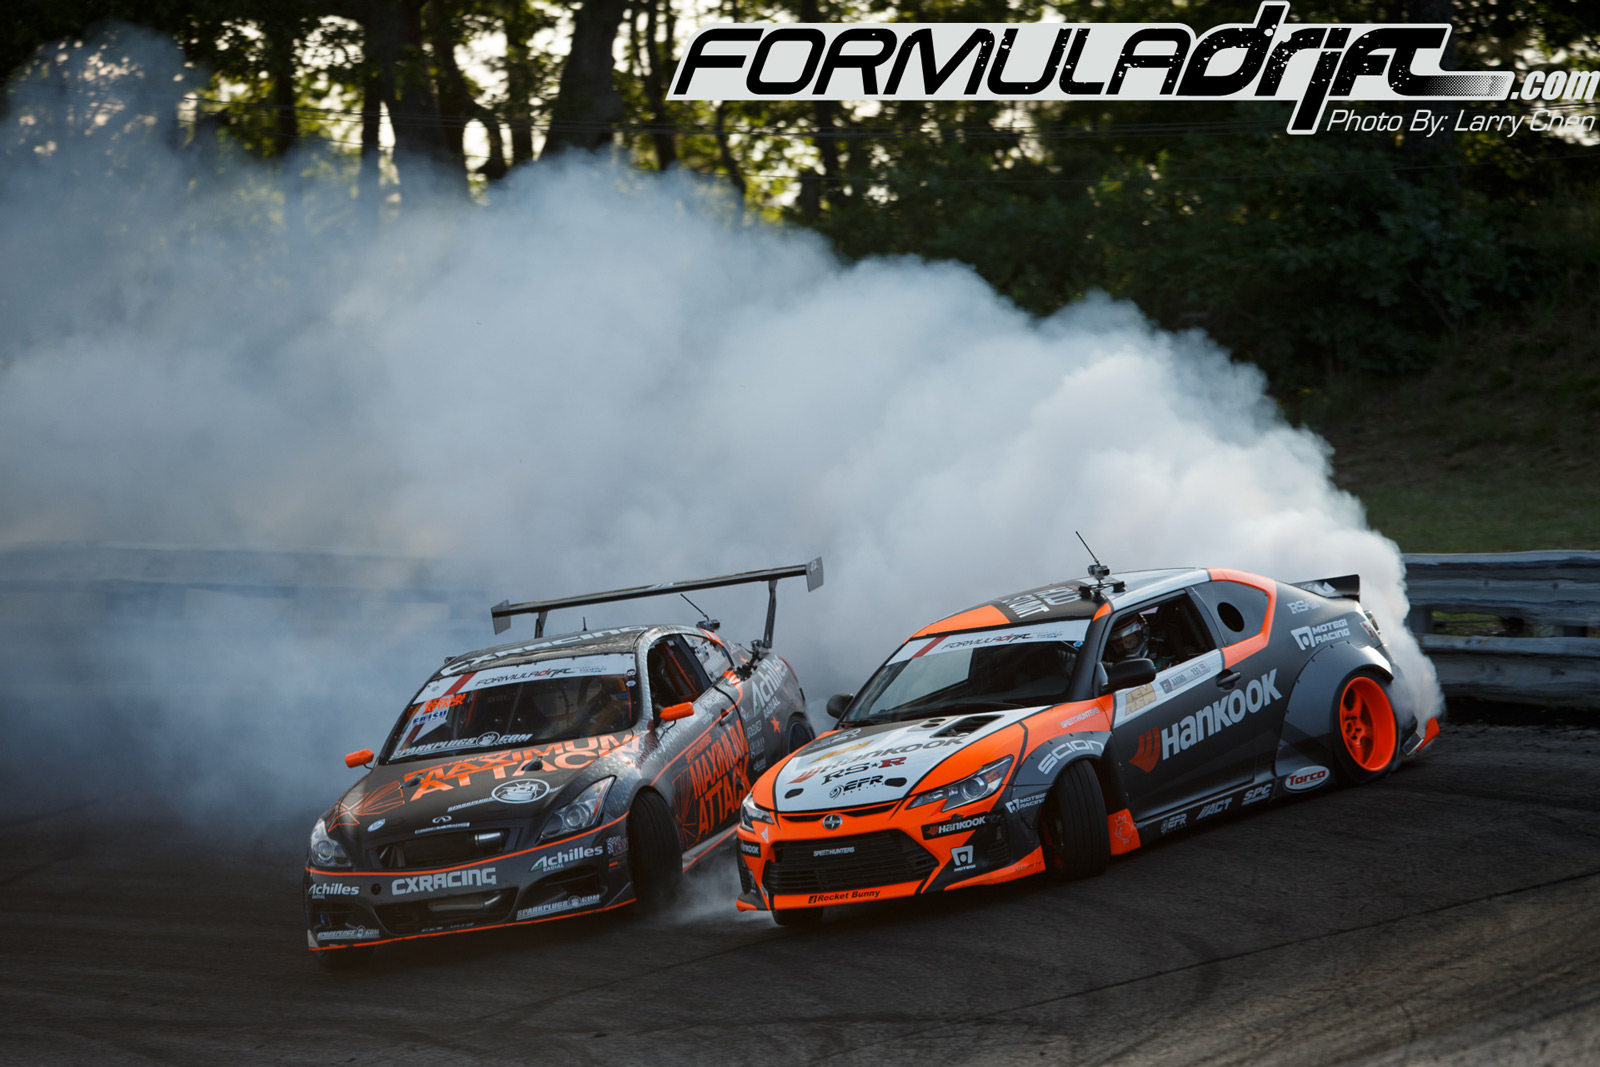 PASMAG Formula Drift The Gauntlet Wall Speedway New Jersey FDNJ 2014 Larry Chen  9659